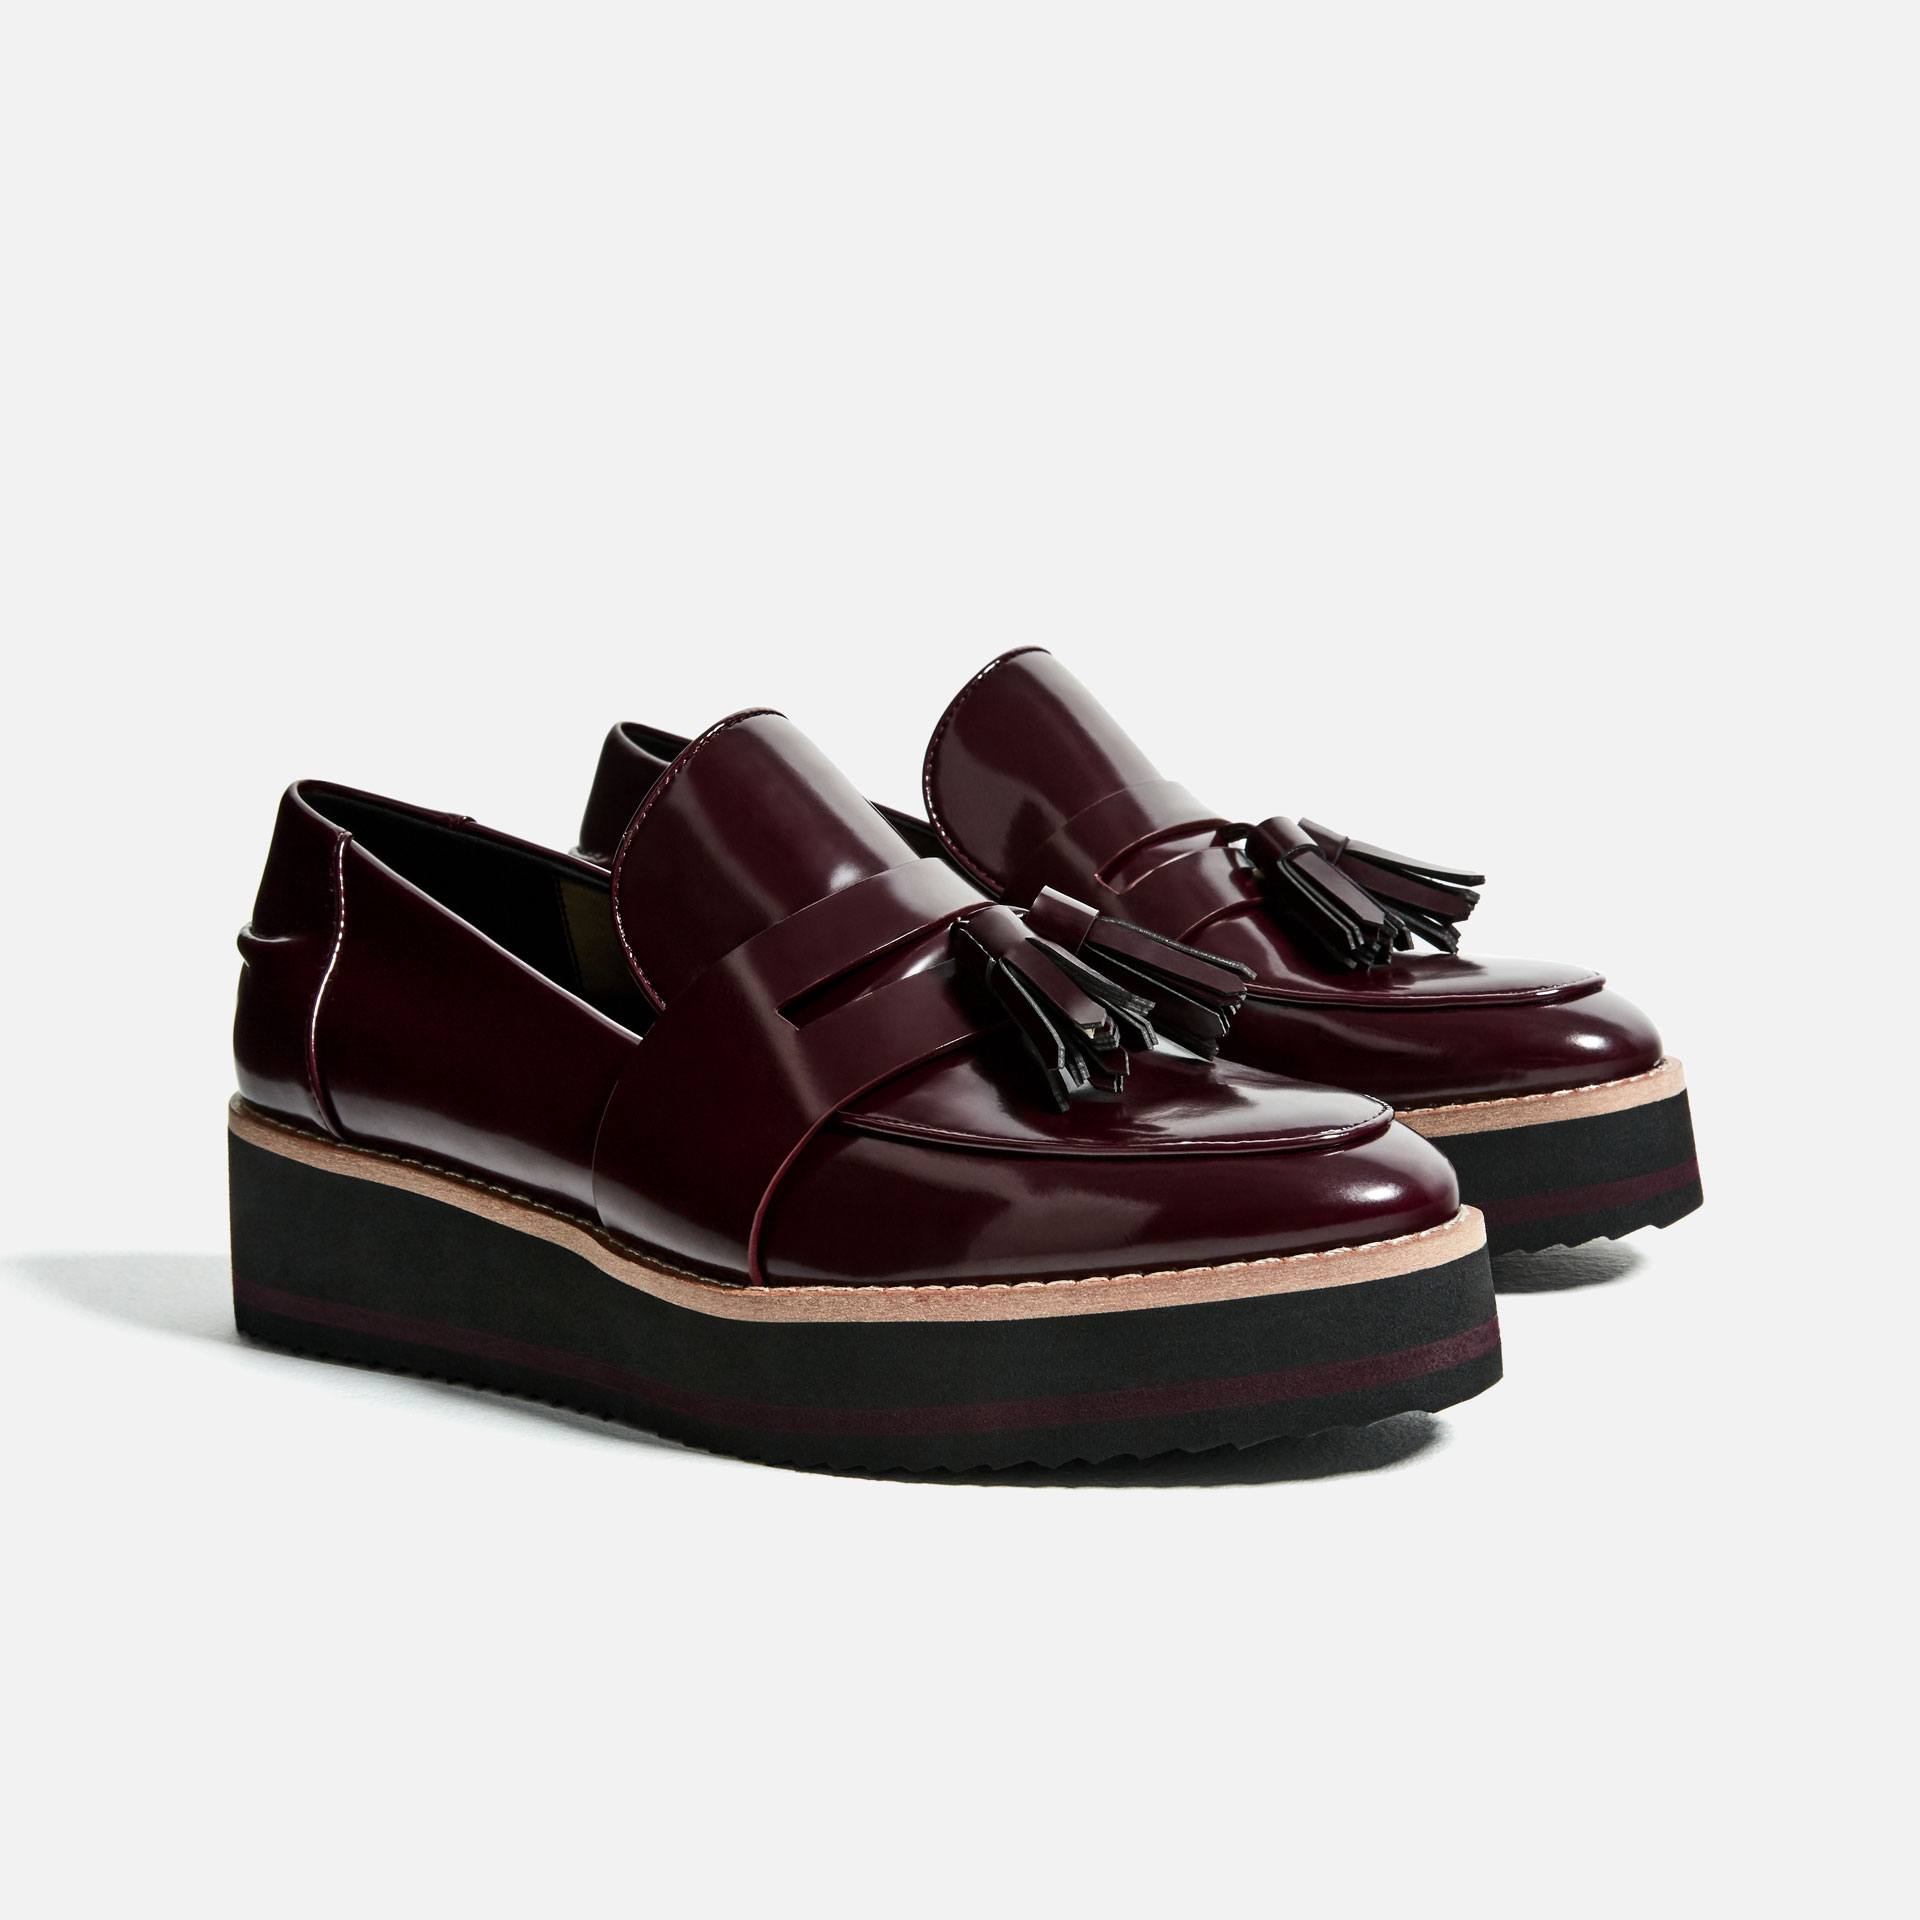 8 Zara Shoes You Can Buy Right Now That